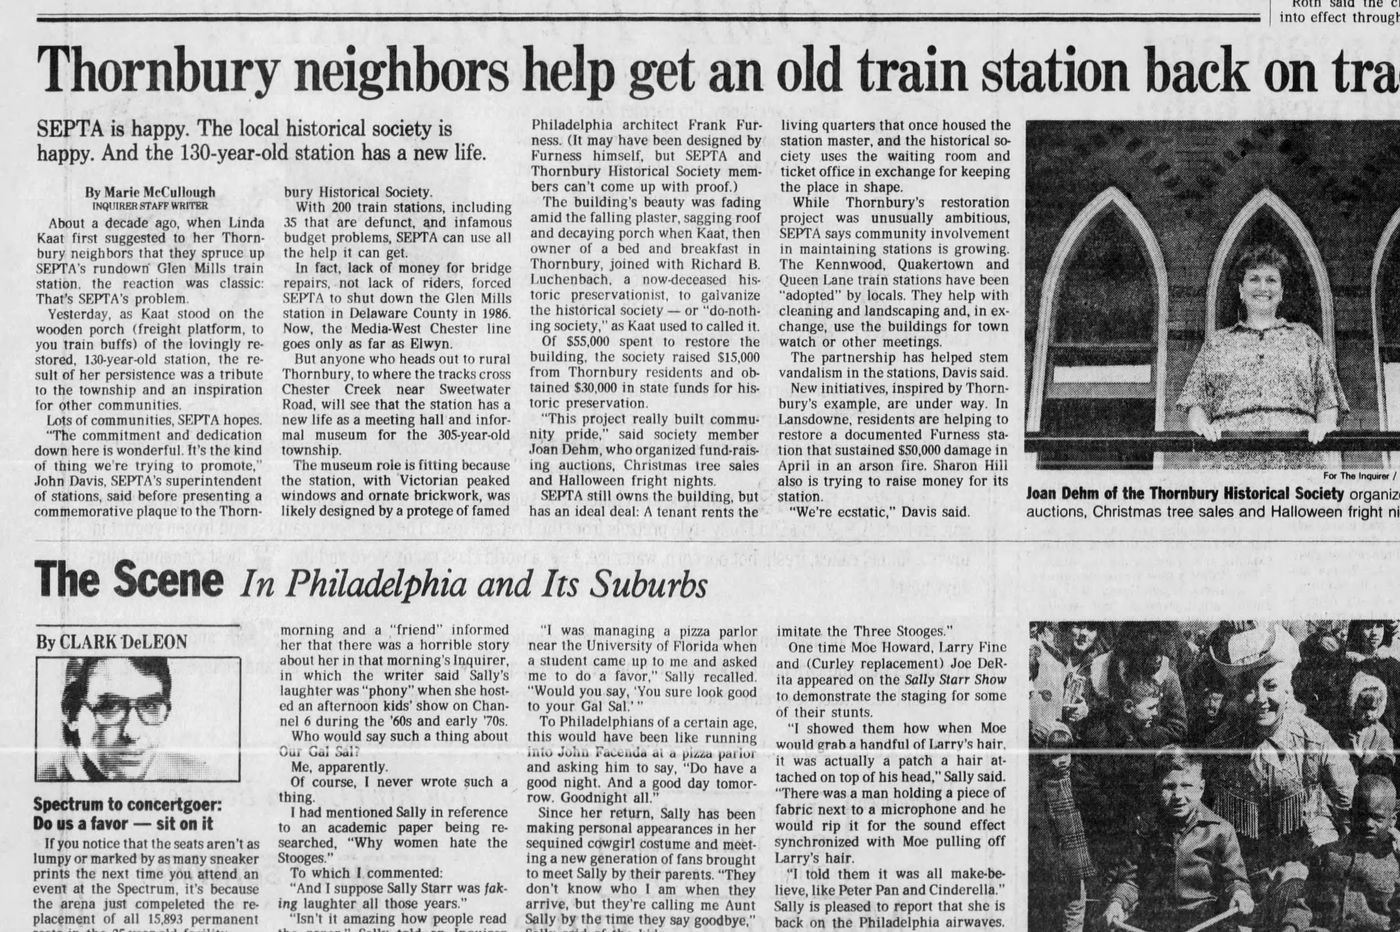 From the Inquirer archives: Sprucing up a SEPTA station in Delco